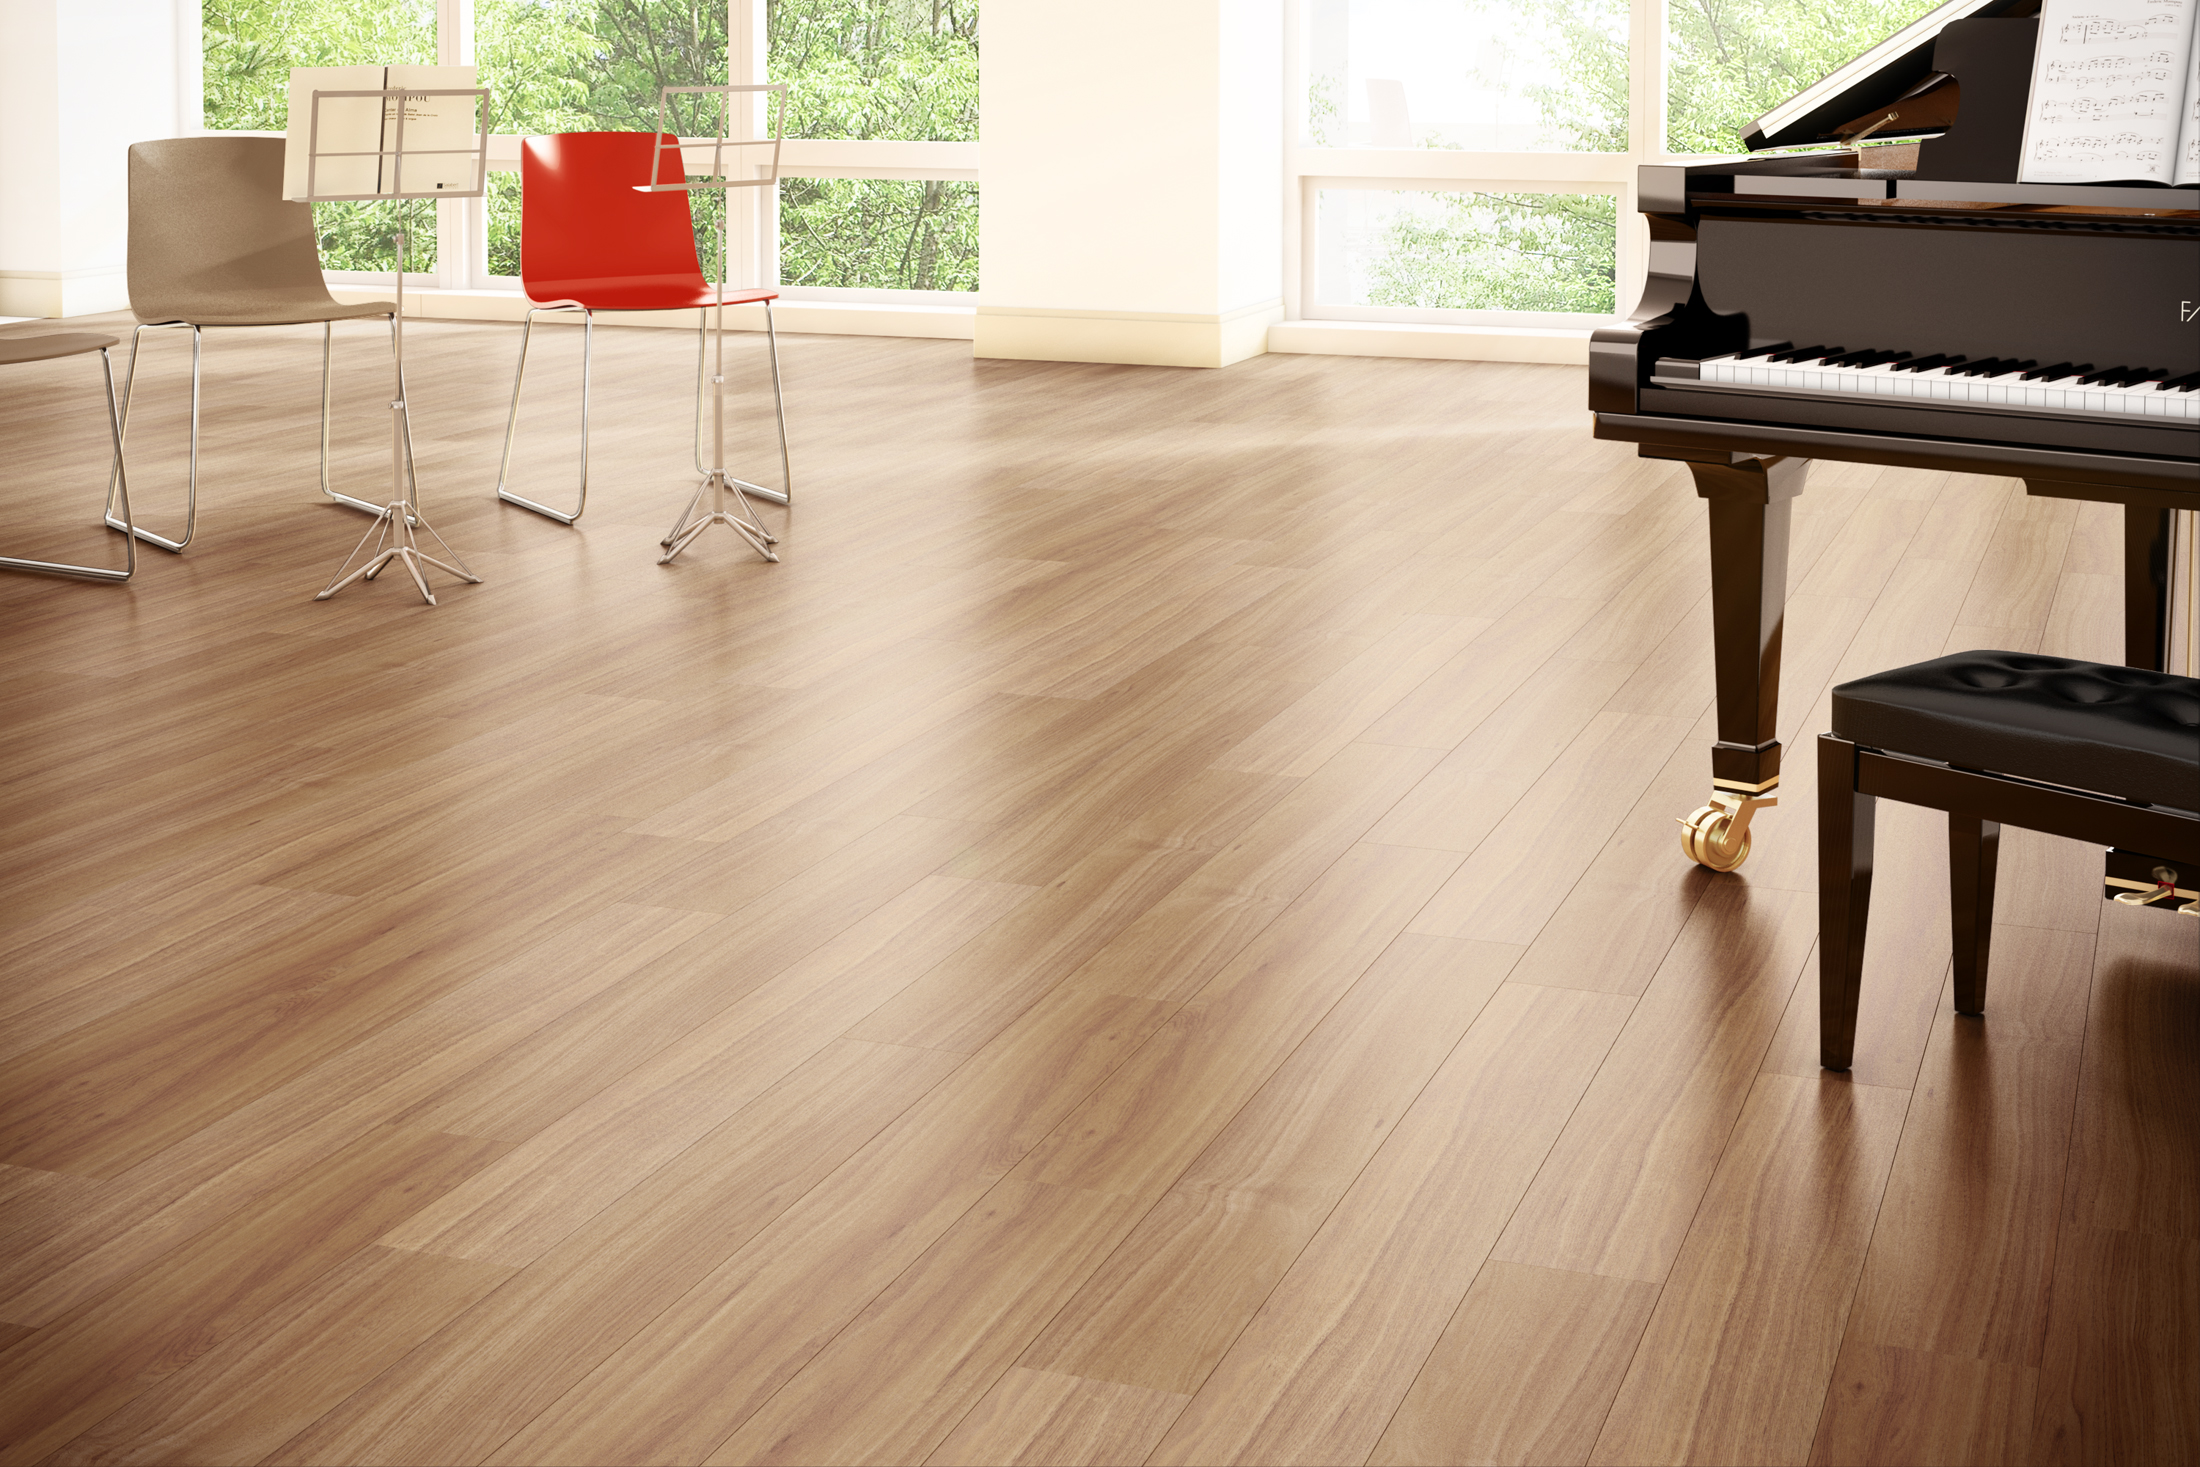 Buy Best Luxury Vinyl Flooring Dubai Abu Dhabi Al Ain